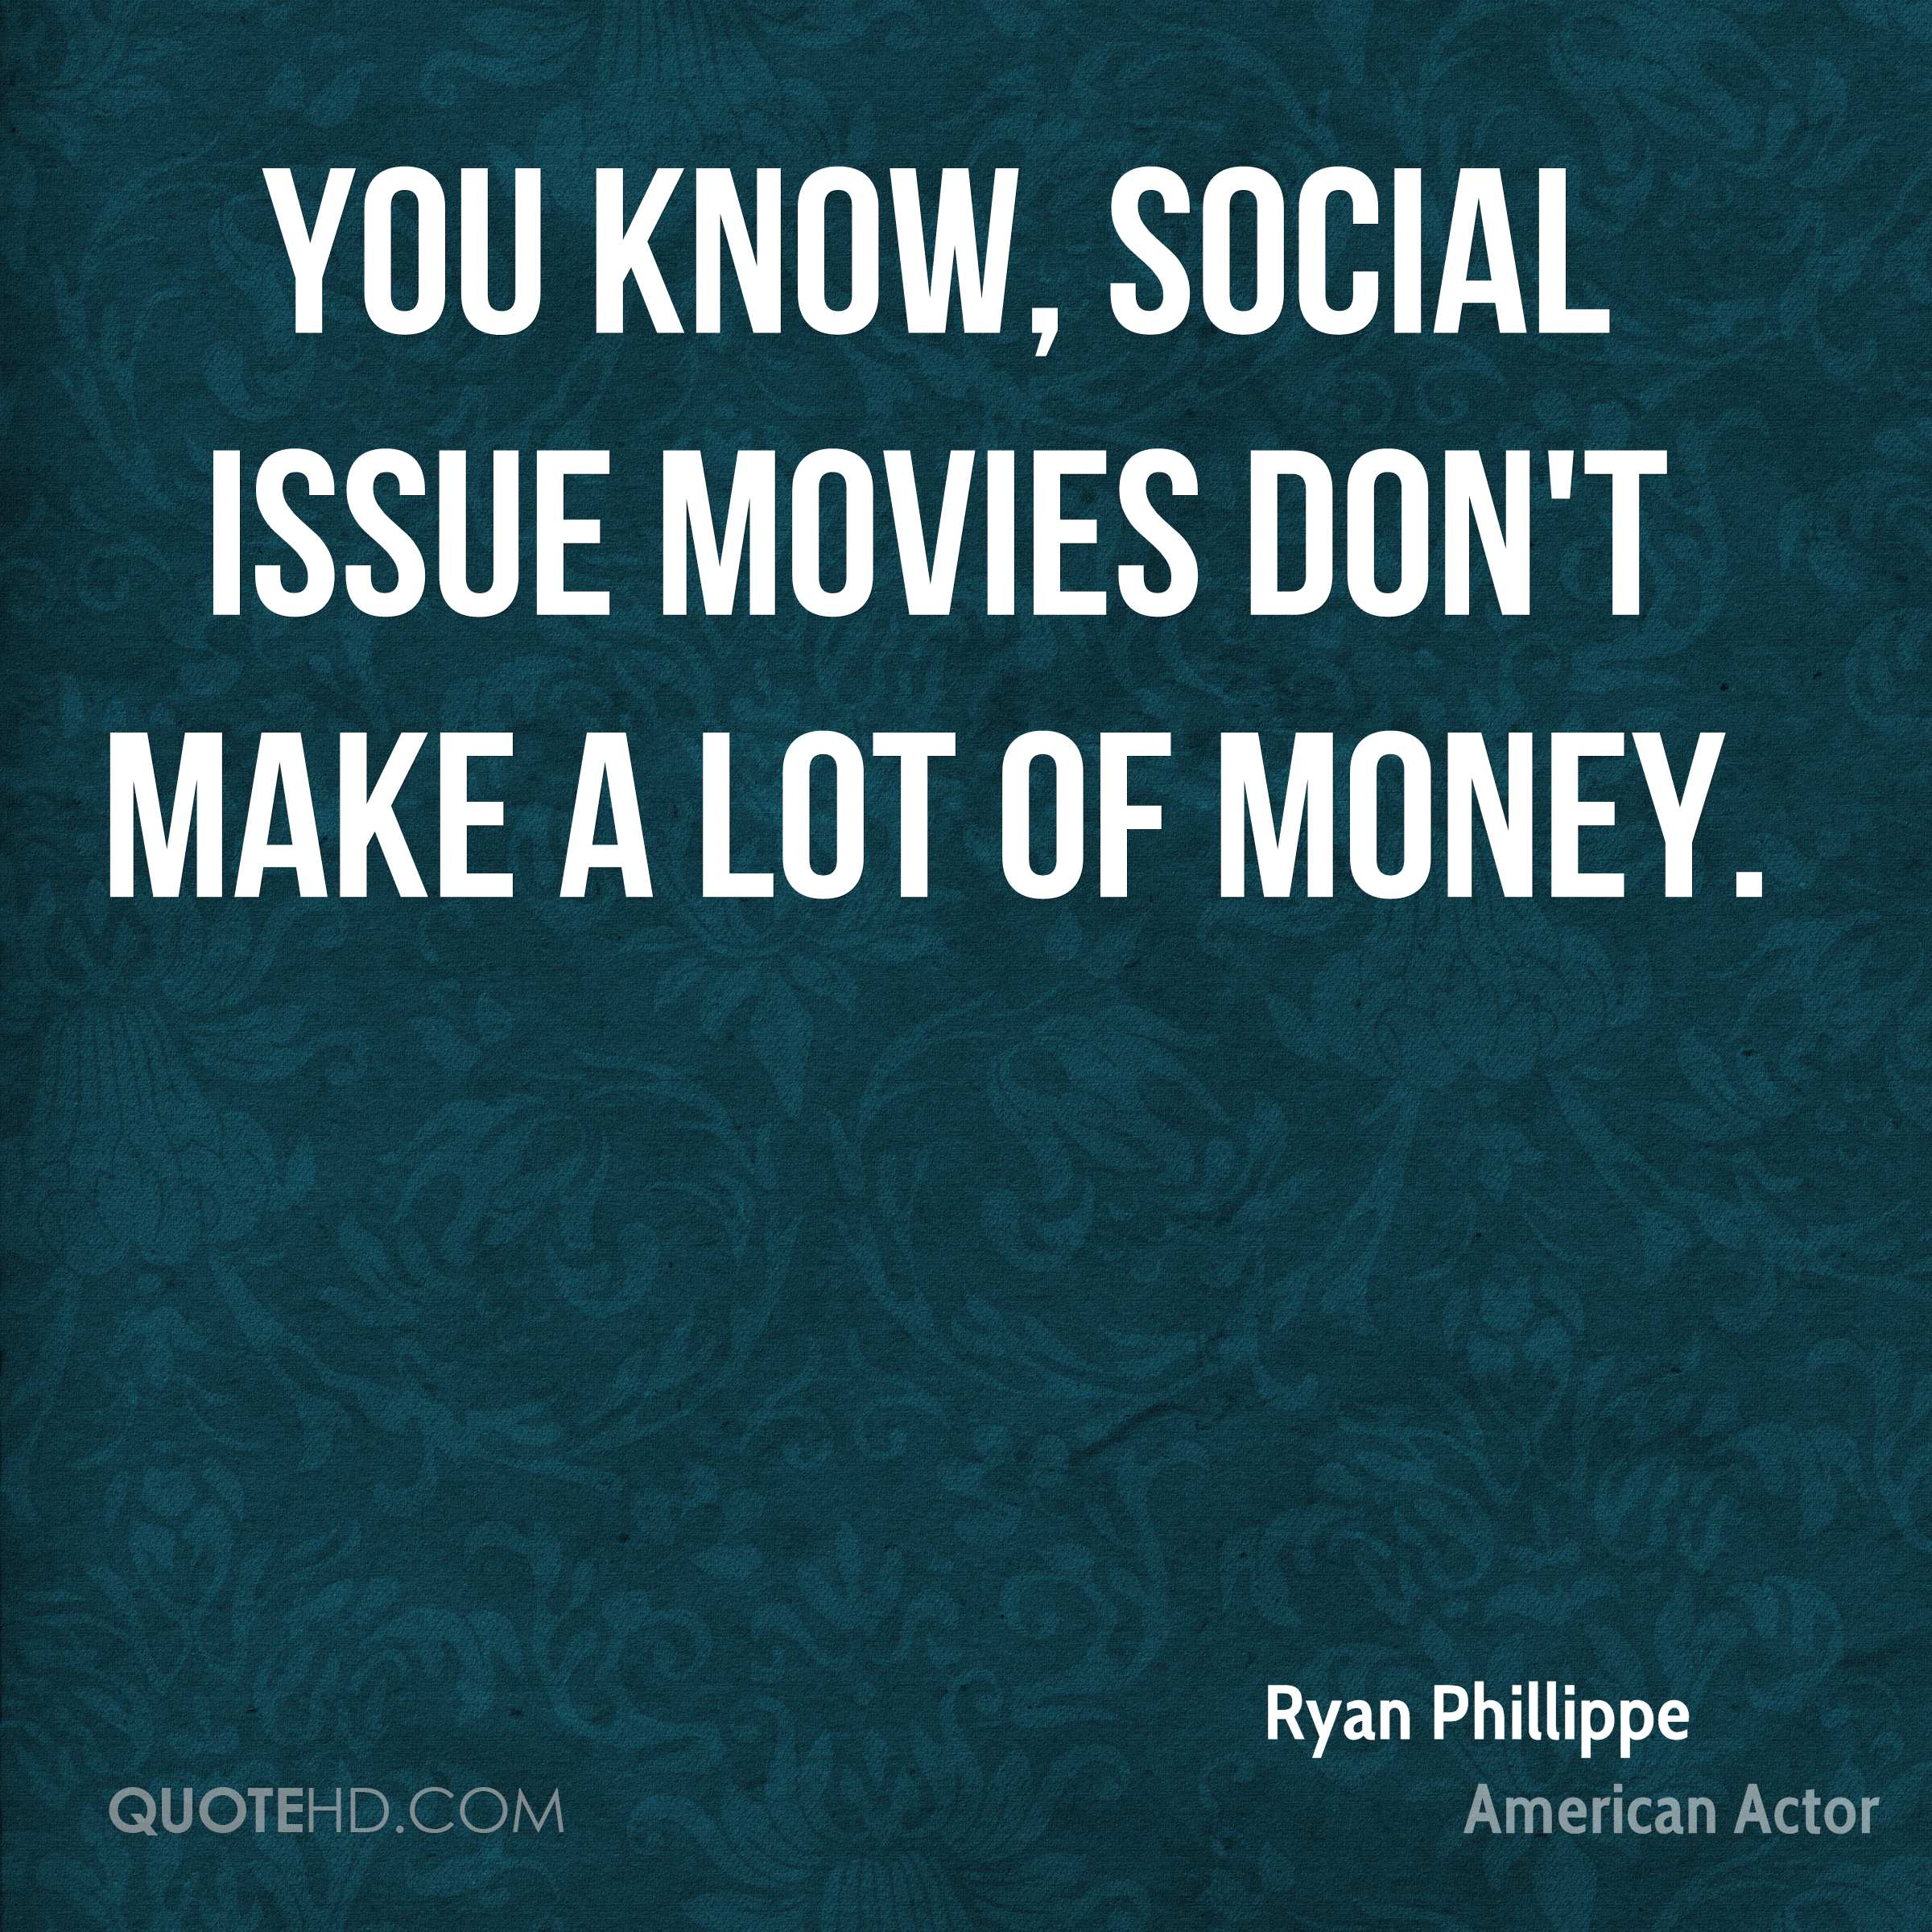 You know, social issue movies don't make a lot of money.